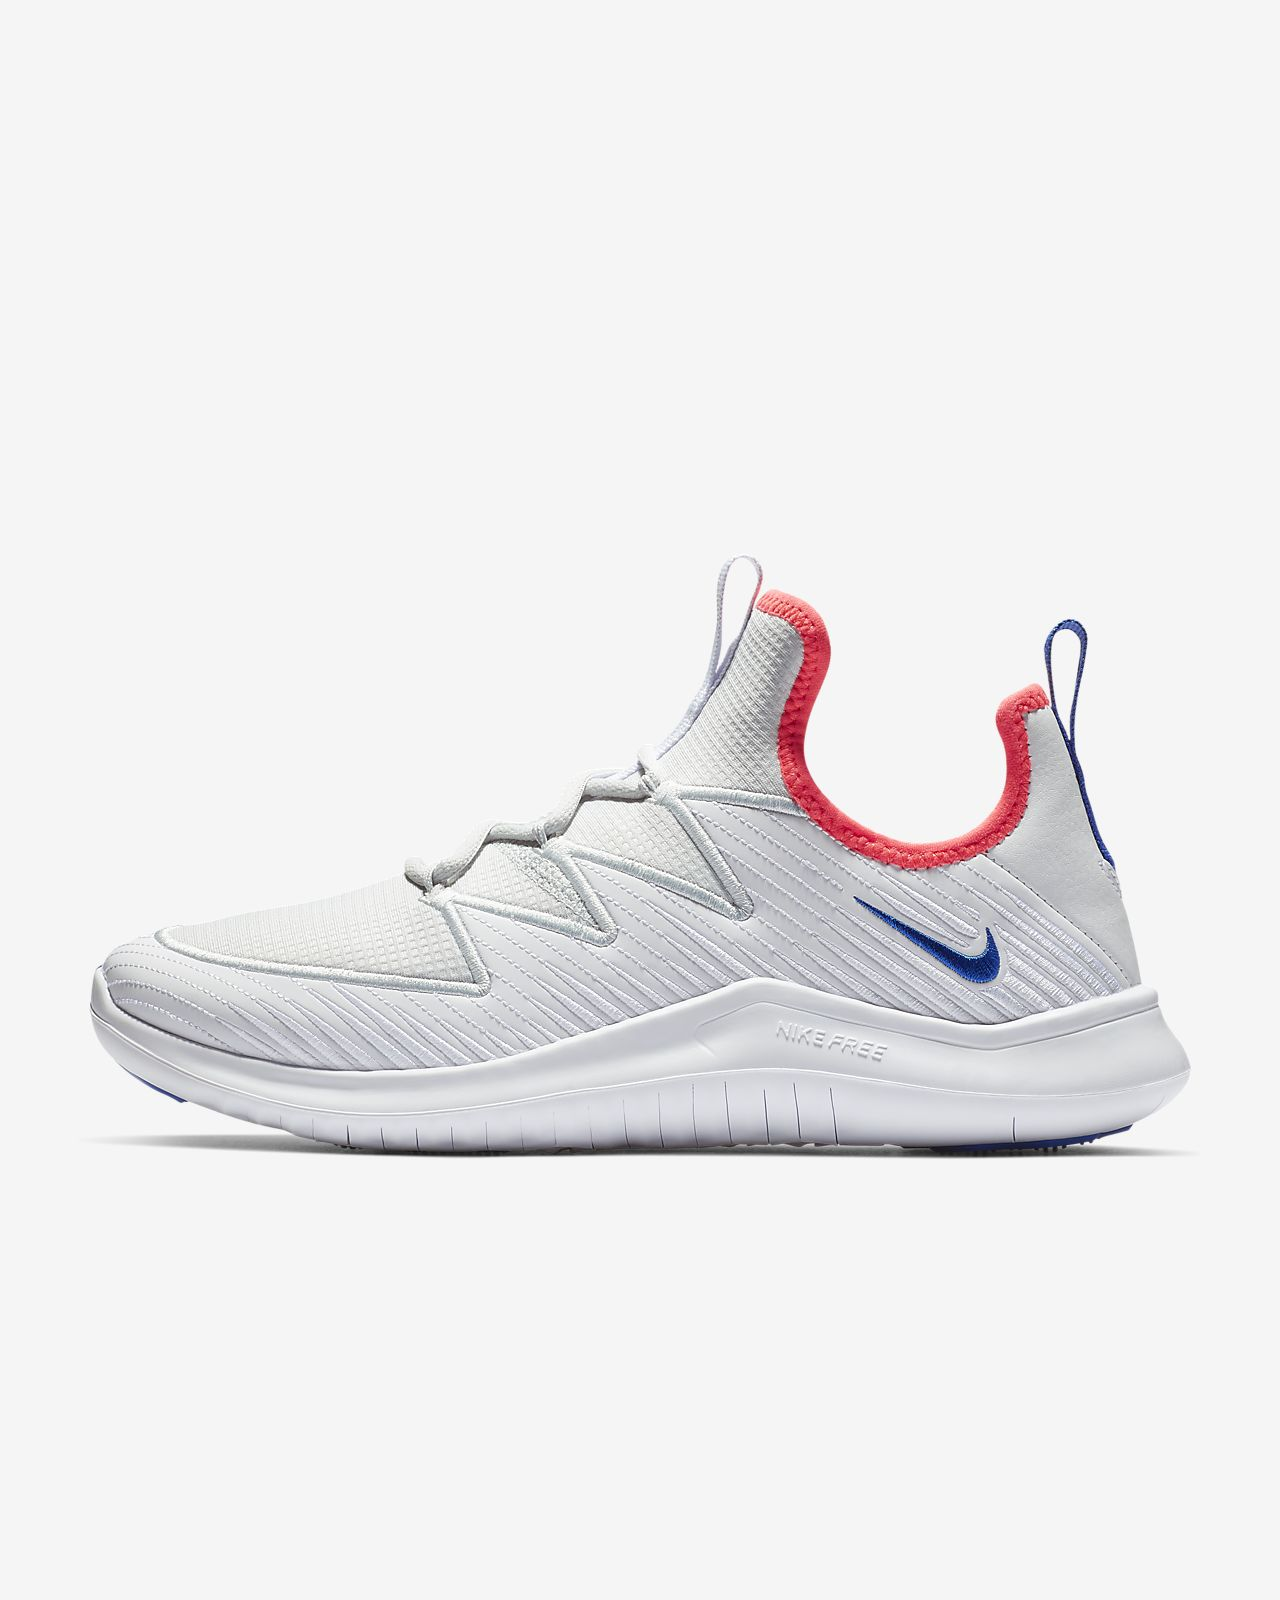 the latest 8ad54 d45d8 ... Nike Free TR Ultra Trainingsschoen voor dames